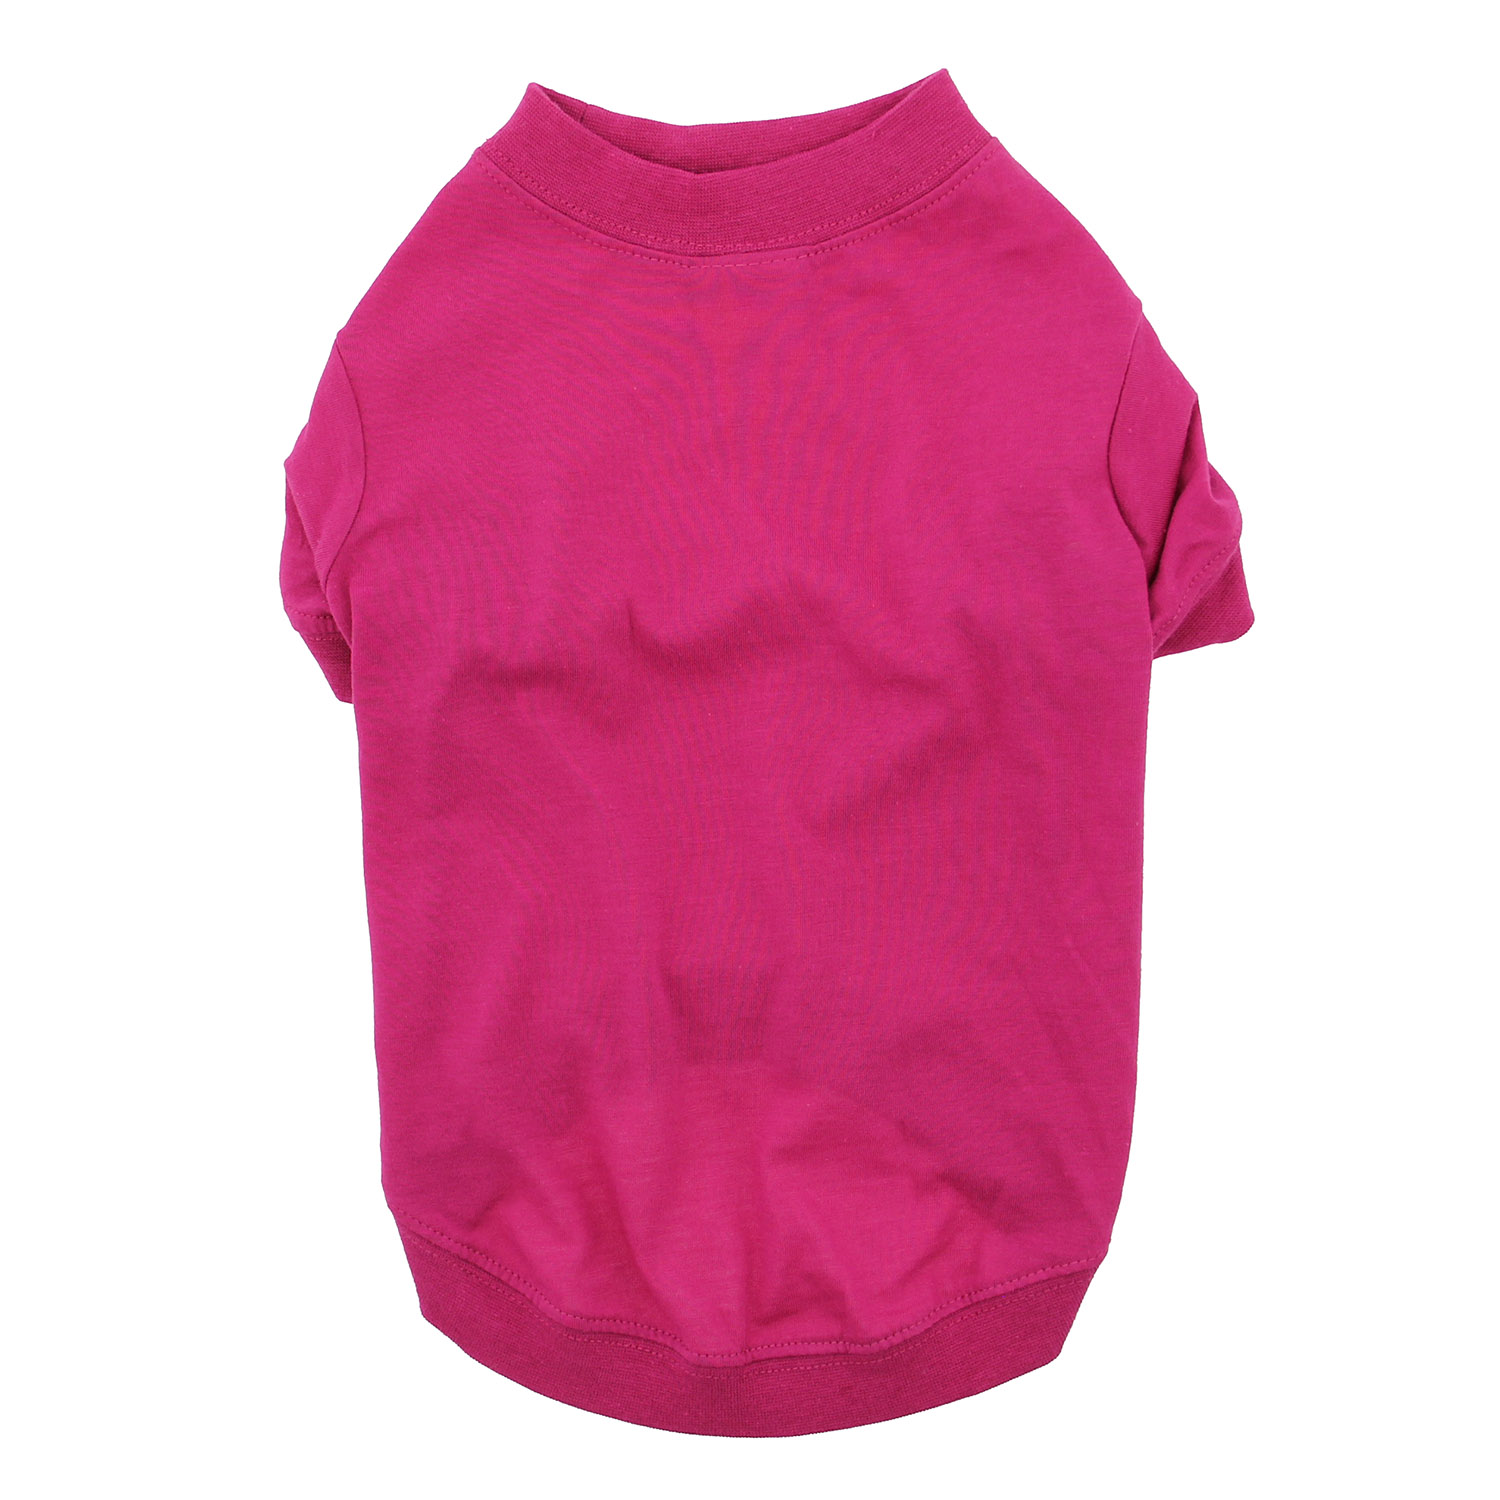 Zack & Zoey Basic Dog T-Shirt - Raspberry Sorbet